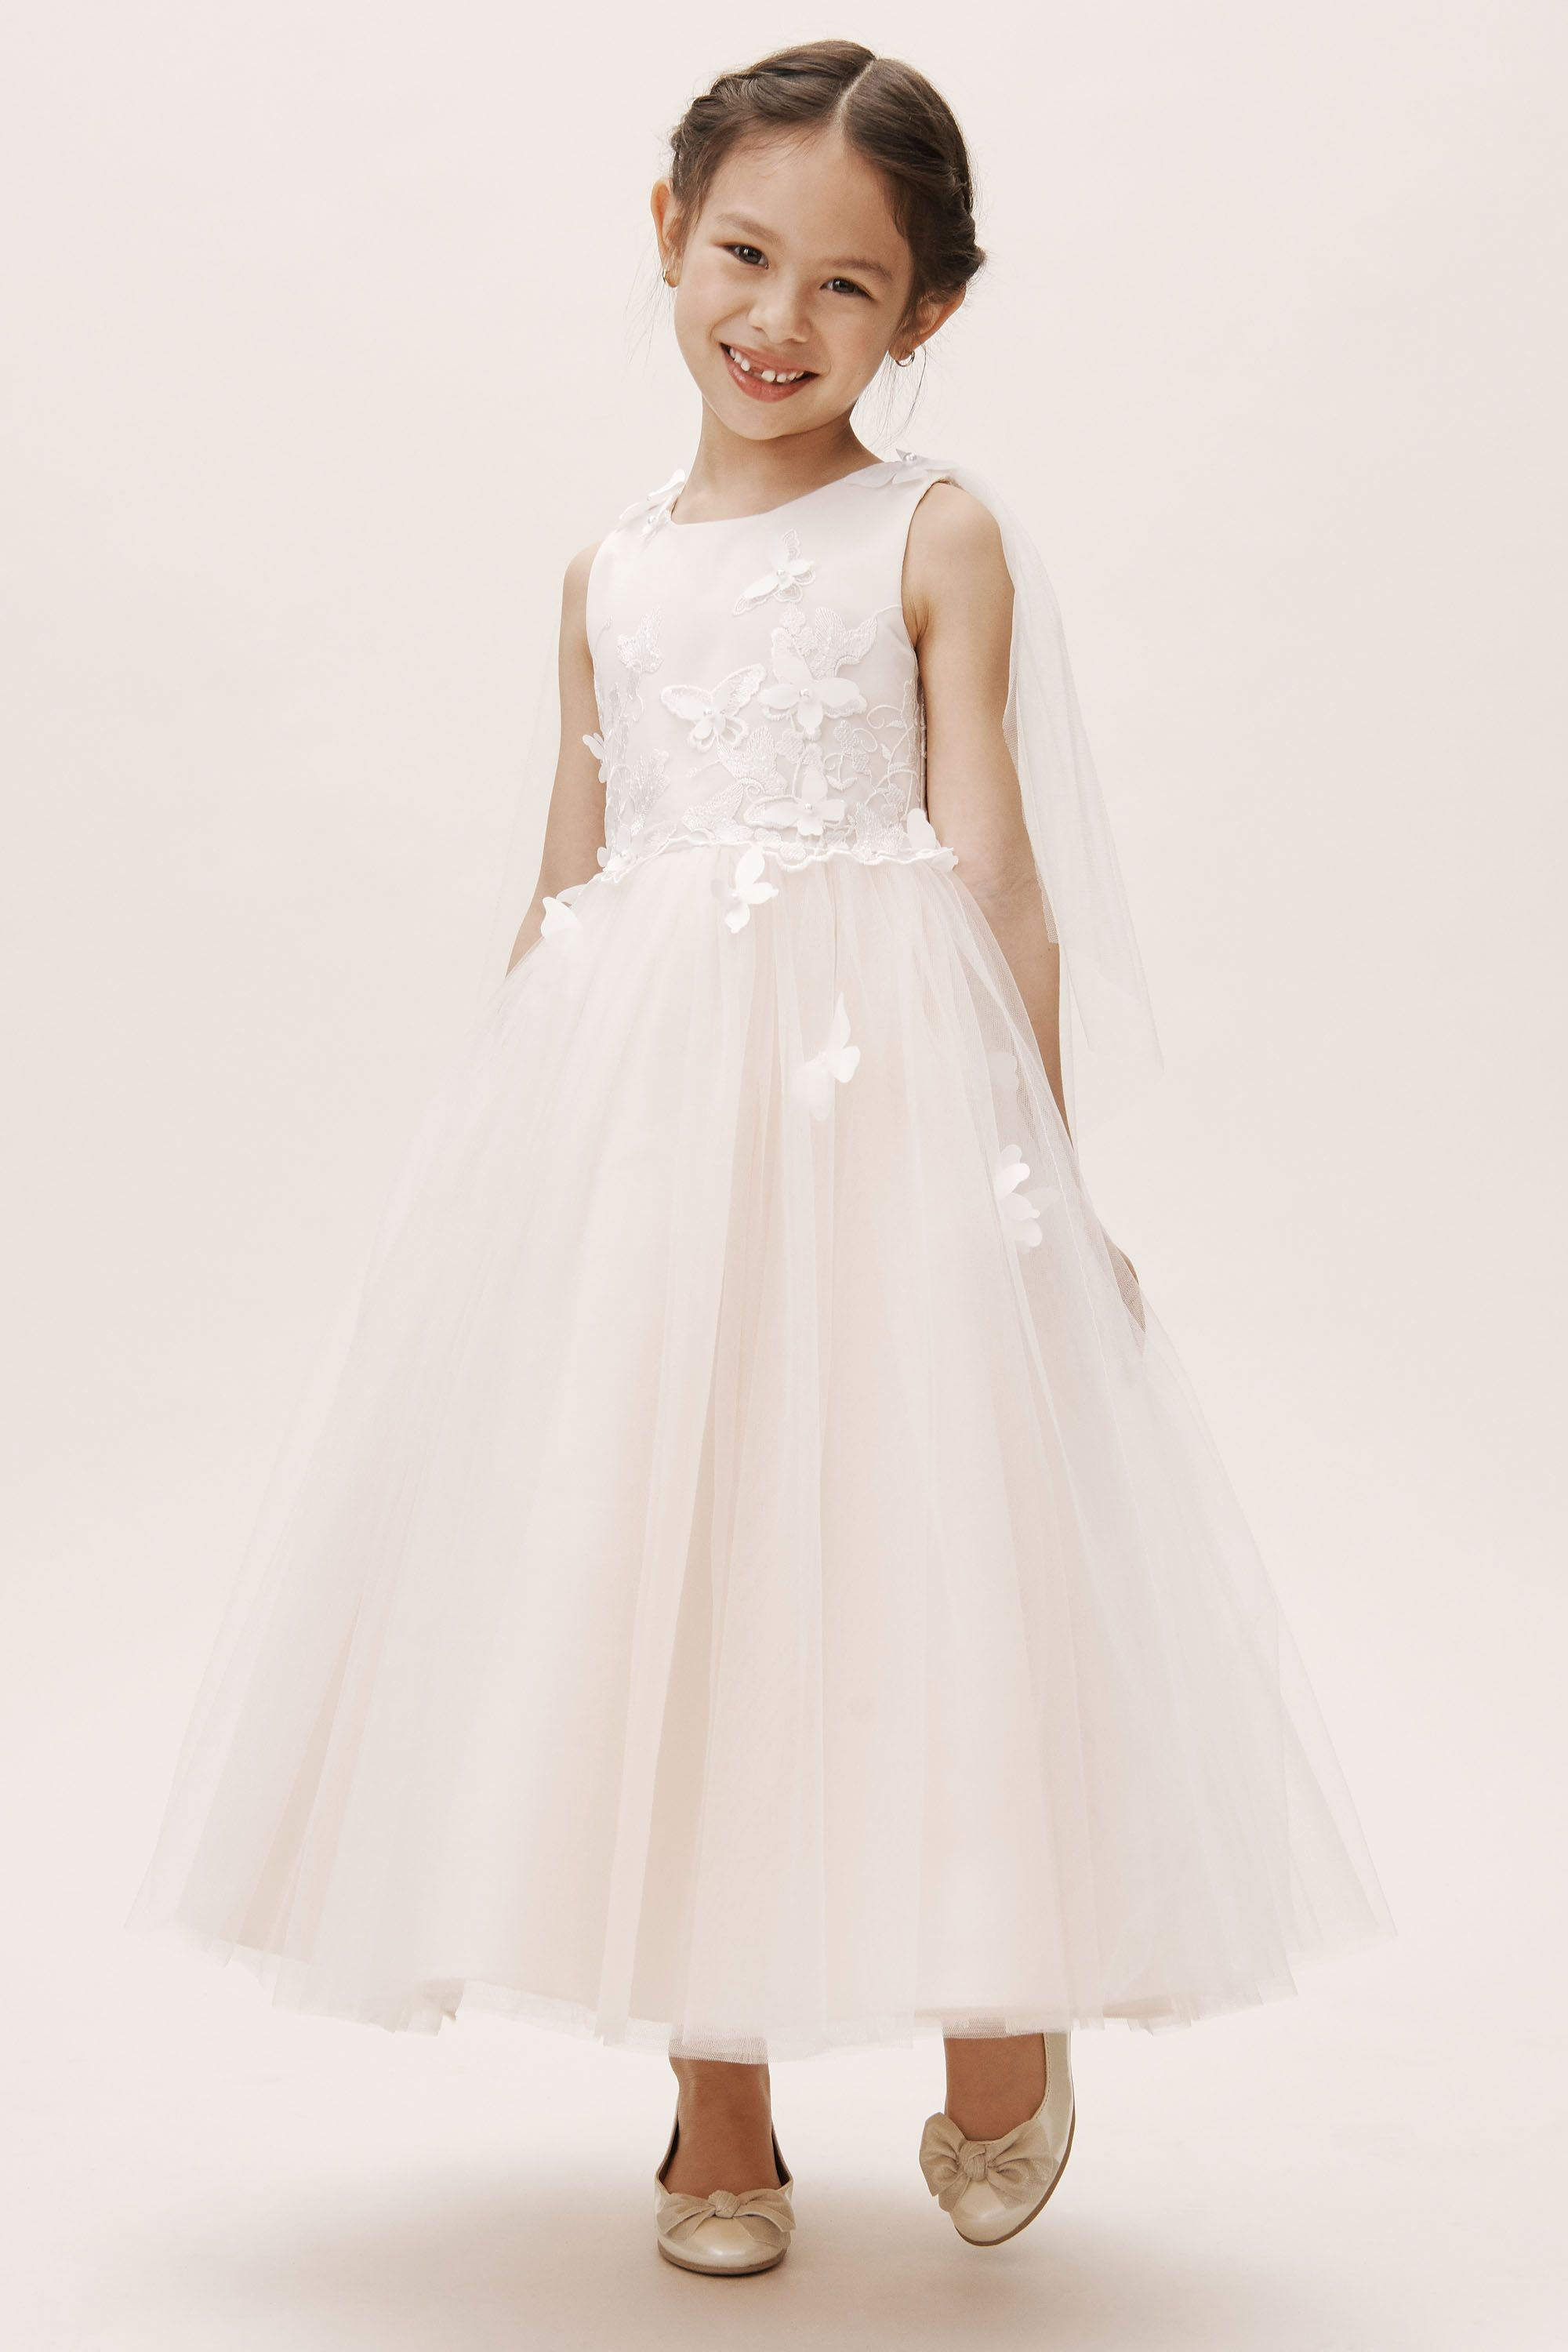 flower girl dress ideas Wanda butterfly applique flower girl dress from BHLDN